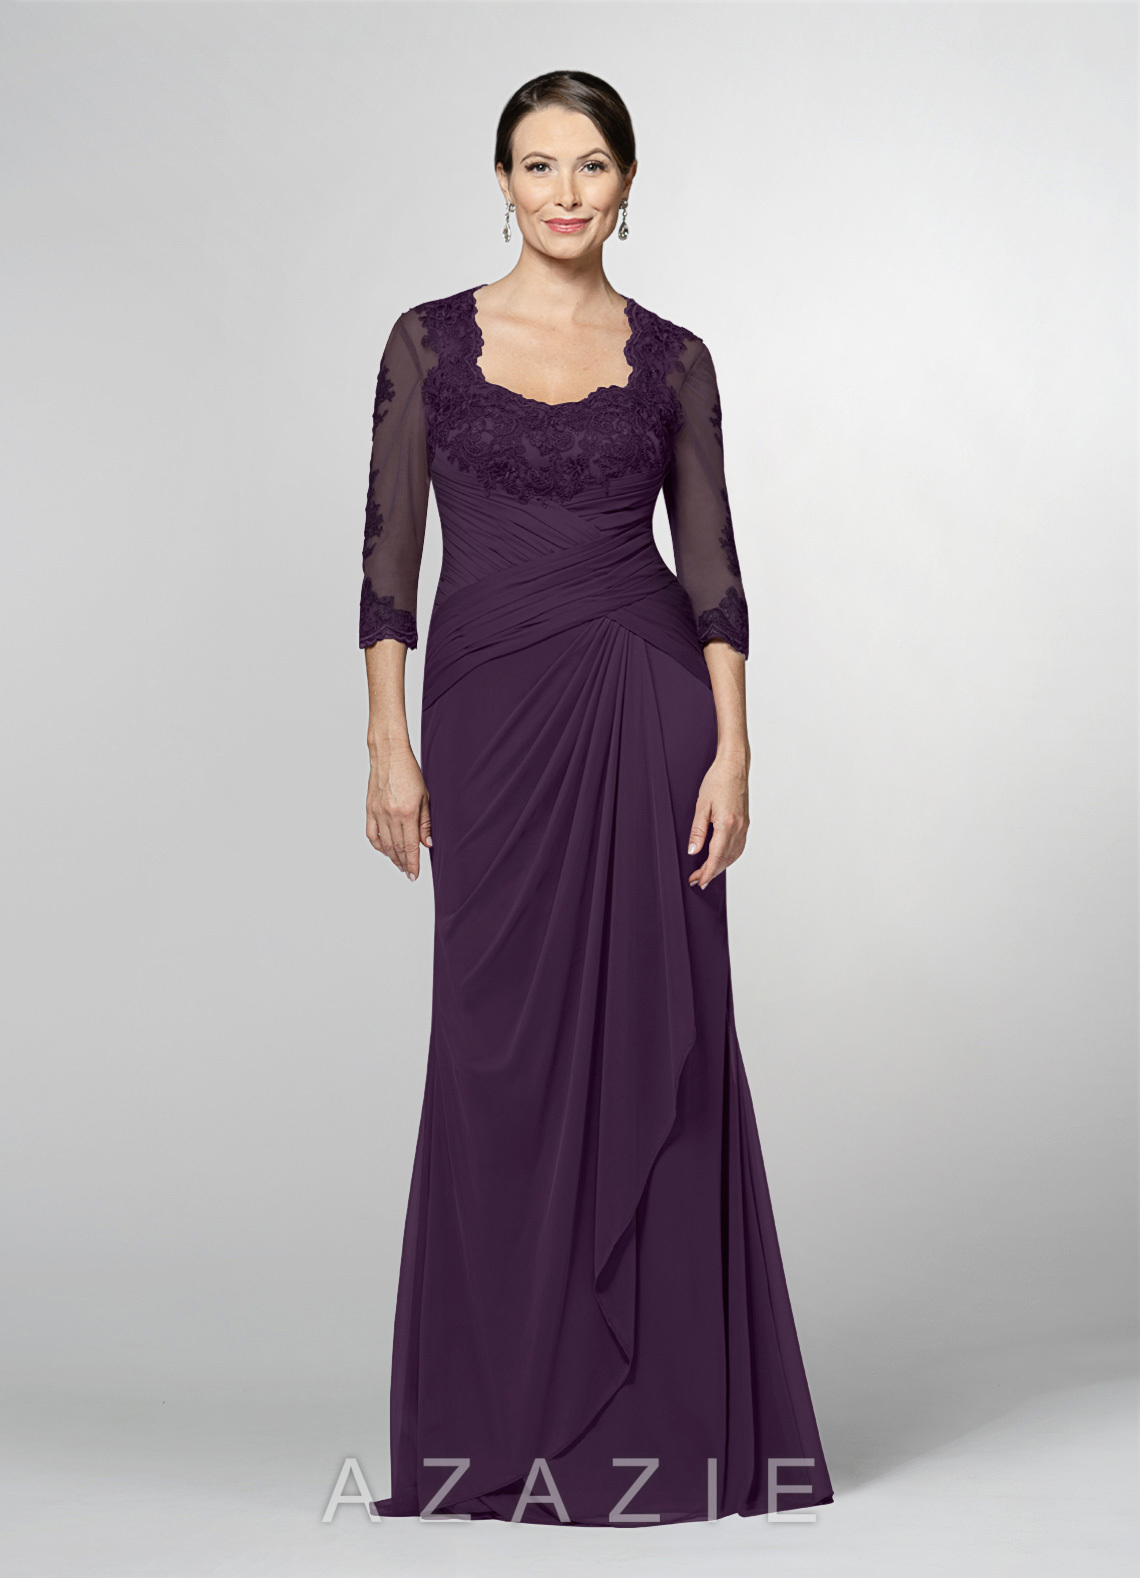 e7cf9f52b2 Azazie Camilla MBD Mother Of The Bride Dress | Azazie